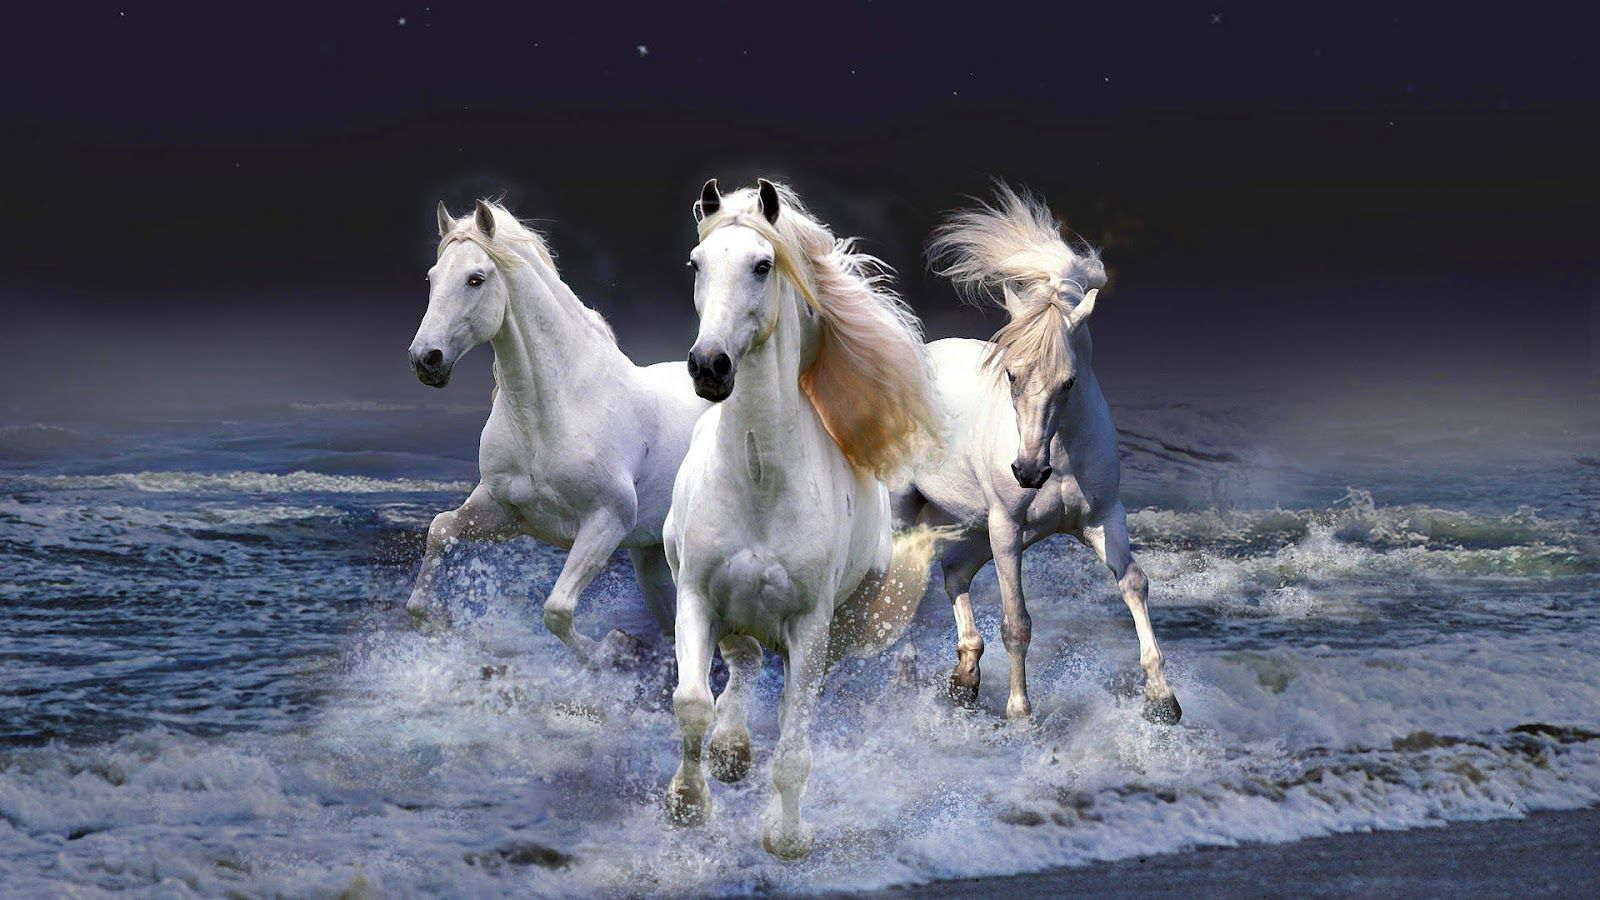 Animated horse Backgrounds horses running through water or 1600x900